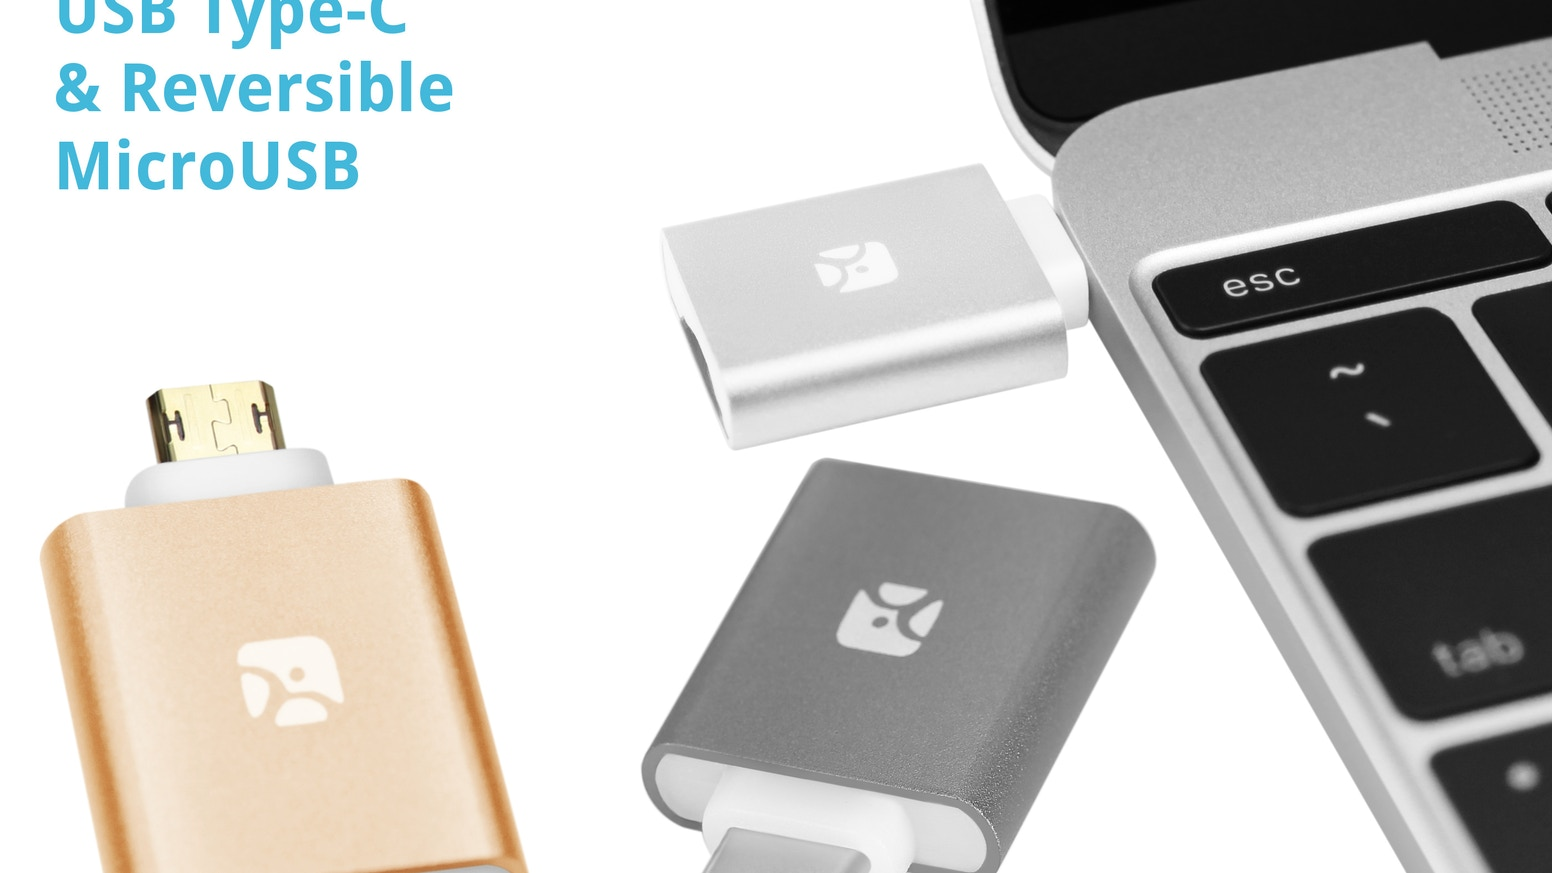 The all new MicroSD reader, now with type-C or reversible MicroUSB plug. A full-size SD reader. Aluminum casing, compact & beautiful.